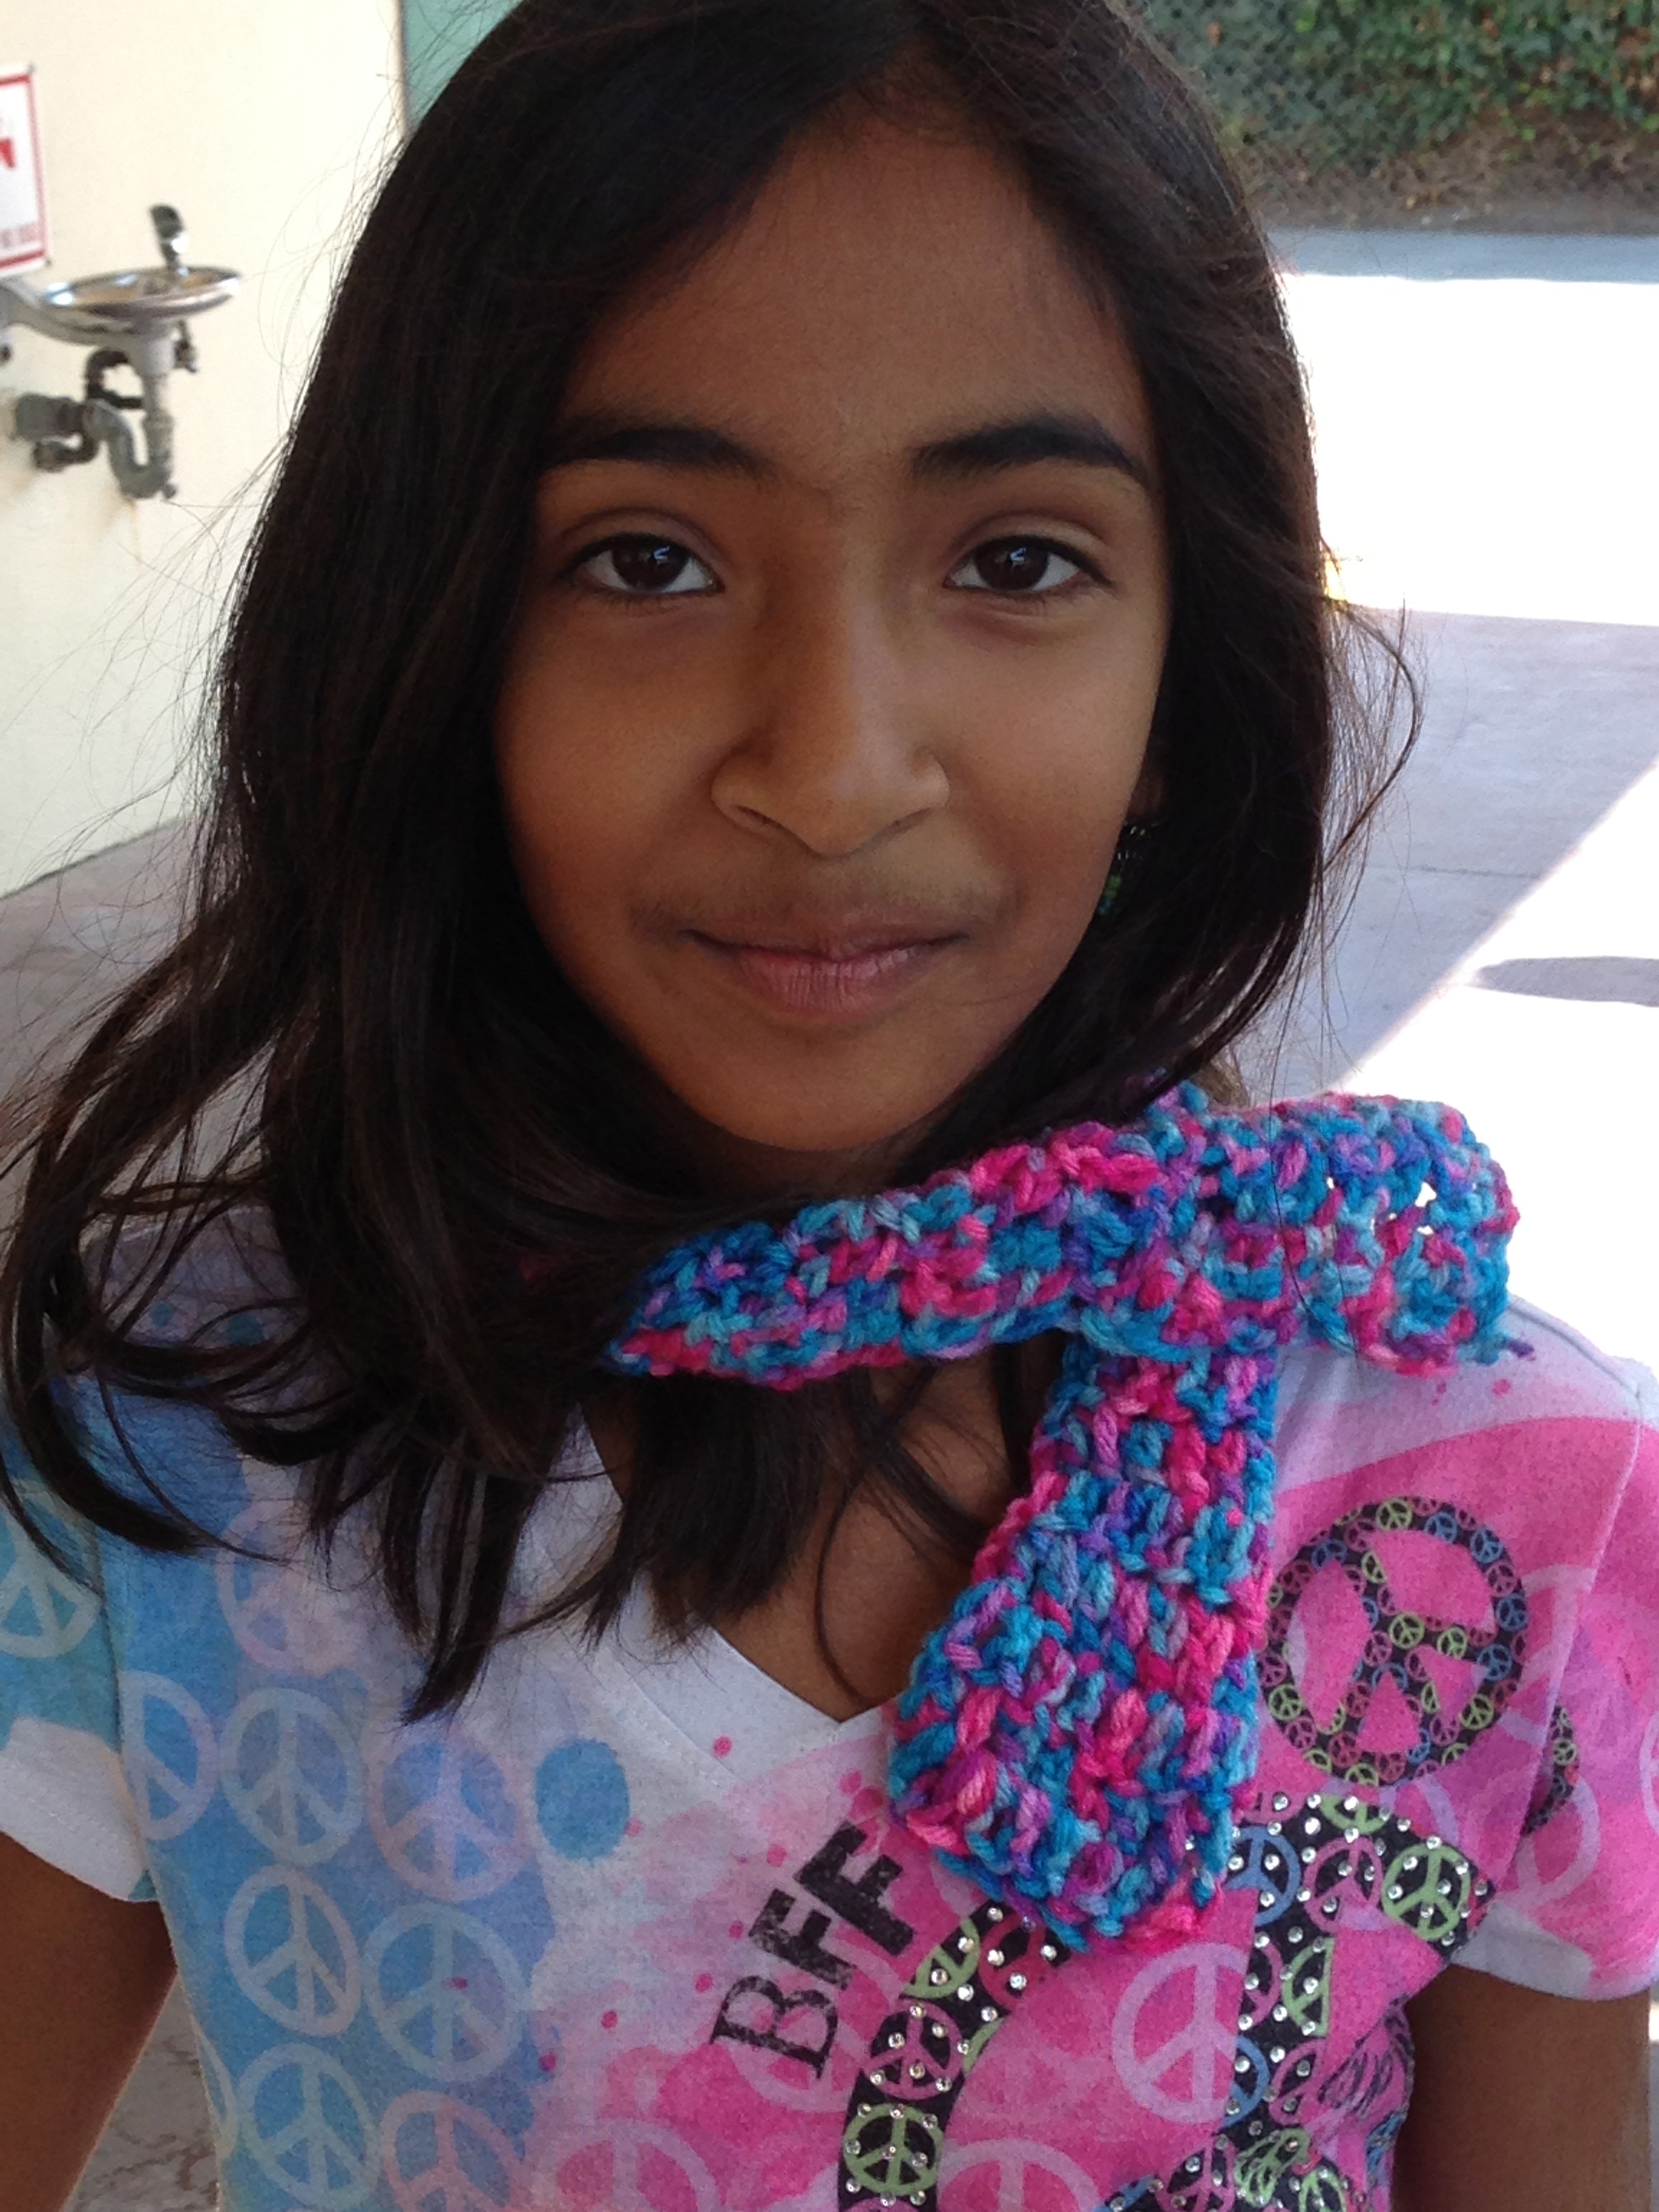 Crocheted scarf by 3rd grader.